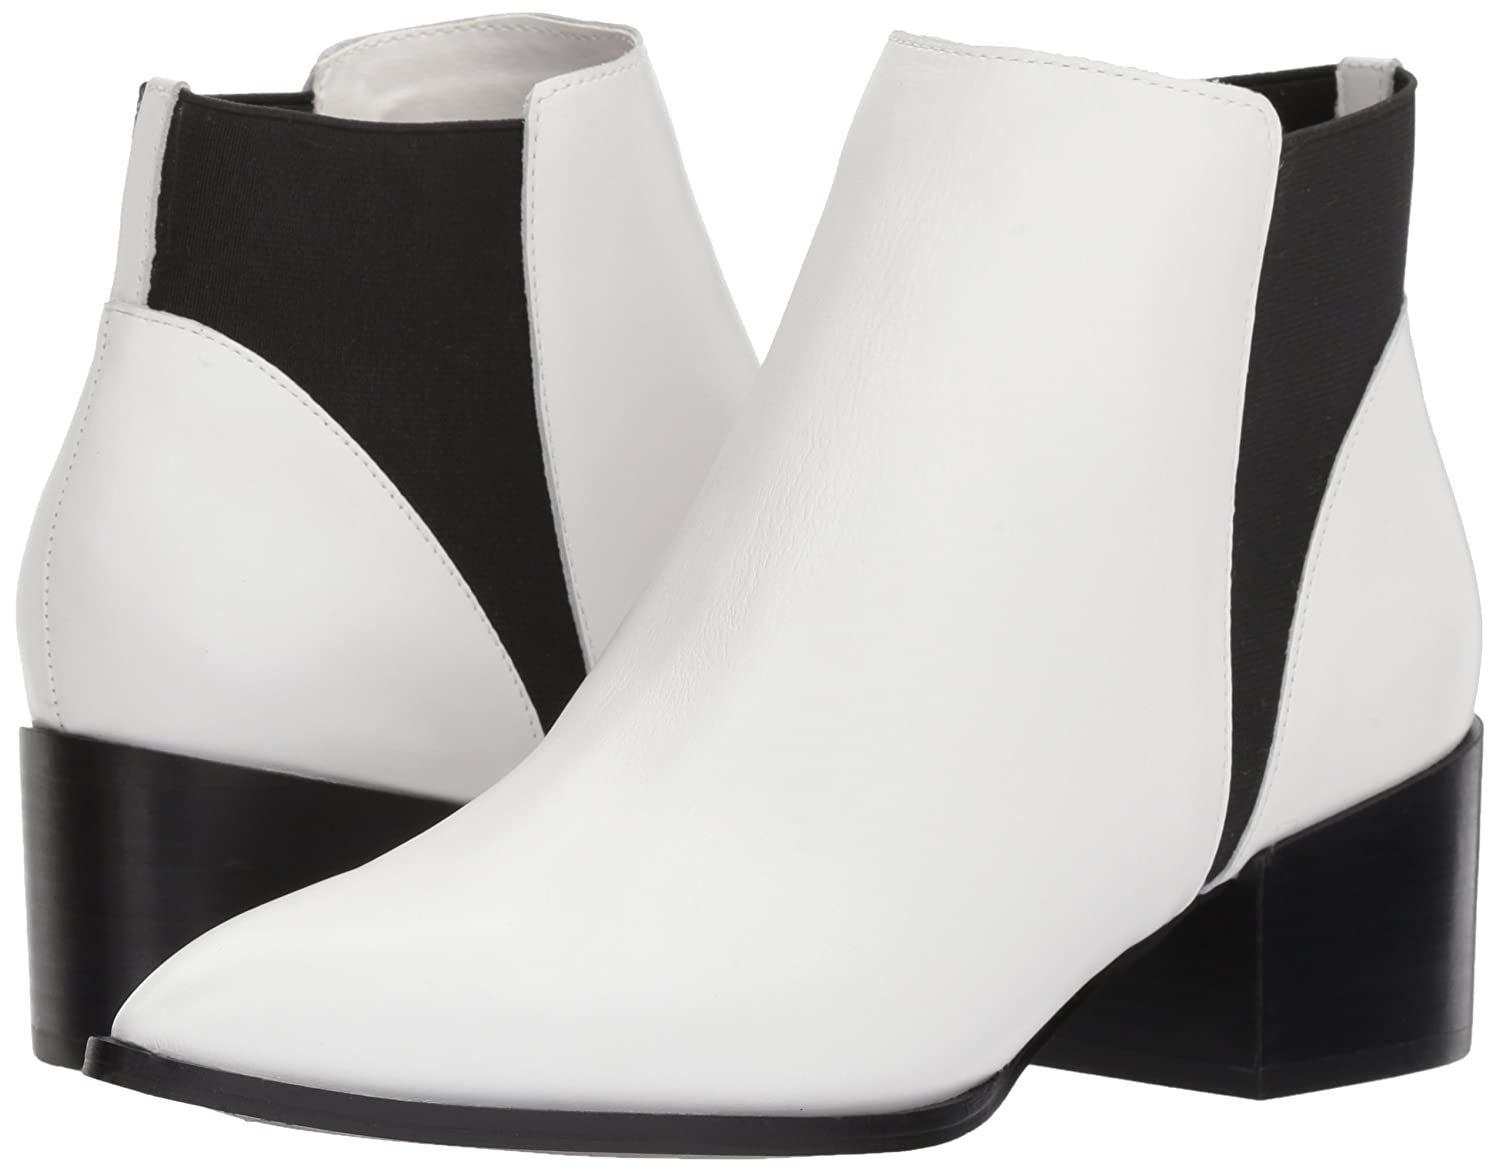 Chinese Laundry Women's Finn Ankle Bootie B075ZQ7GZK 8 B(M) US|White Leather